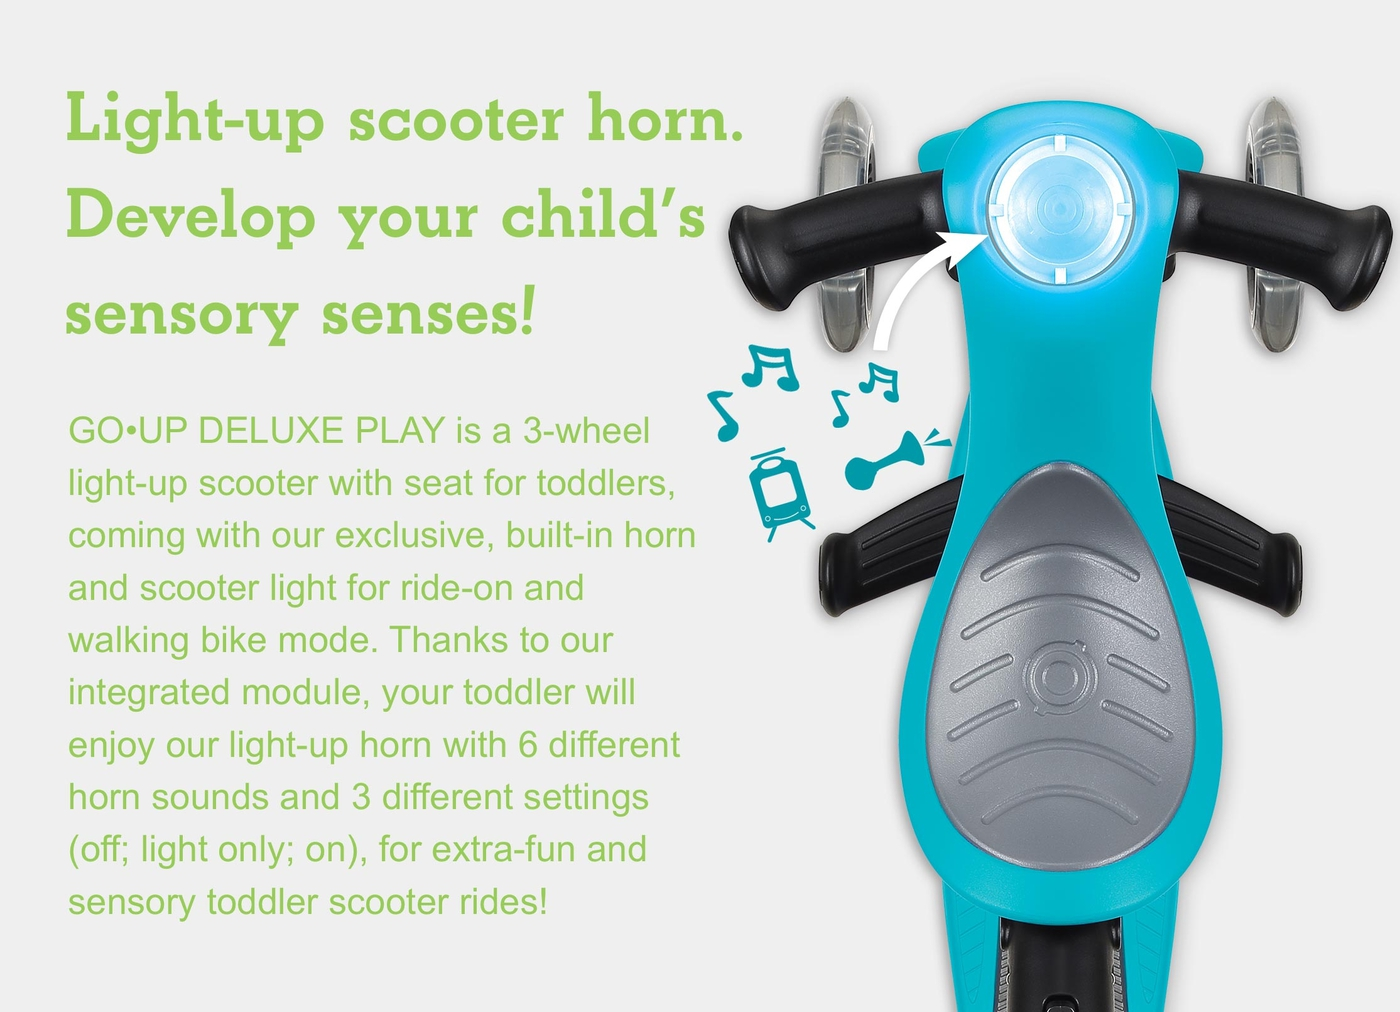 Light-up scooter horn. Develop your child's sensory senses! GO•UP DELUXE PLAY is a 3-wheel light-up scooter with seat for toddlers, coming with our exclusive, built-in horn and scooter light for ride-on and walking bike mode. Thanks to our integrated module, your toddler will enjoy our light-up horn with 6 different horn sounds and 3 different settings (off; light only; on), for extra-fun and sensory toddler scooter rides!